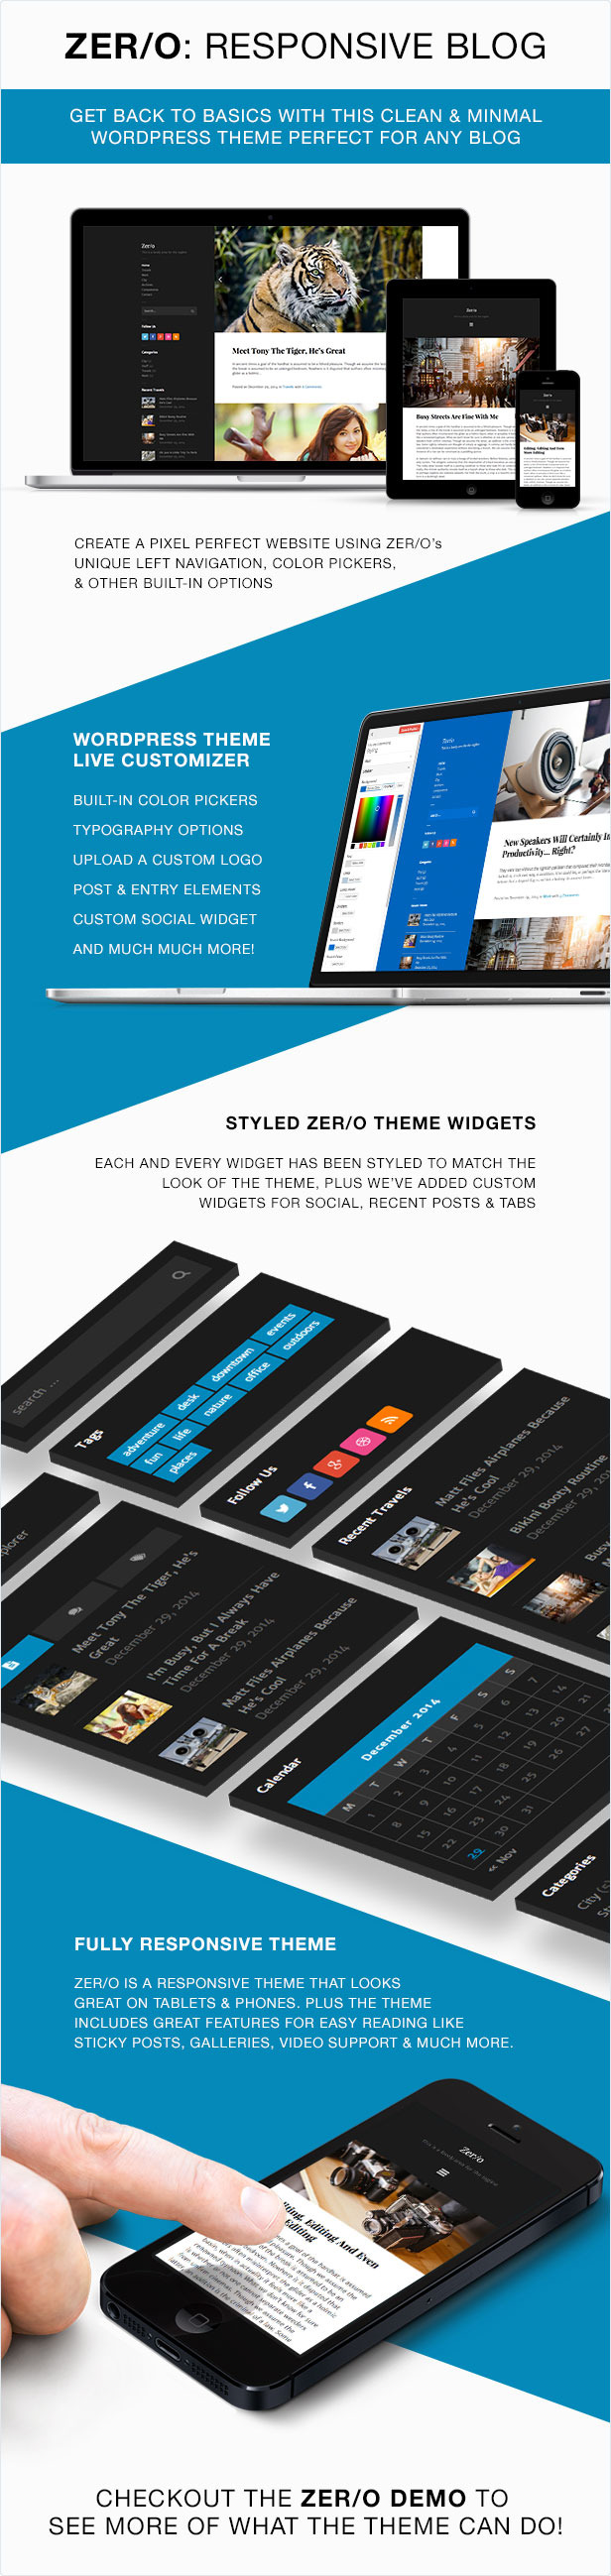 WordPress theme Zero Responsive Blog WordPress Theme (Personal)